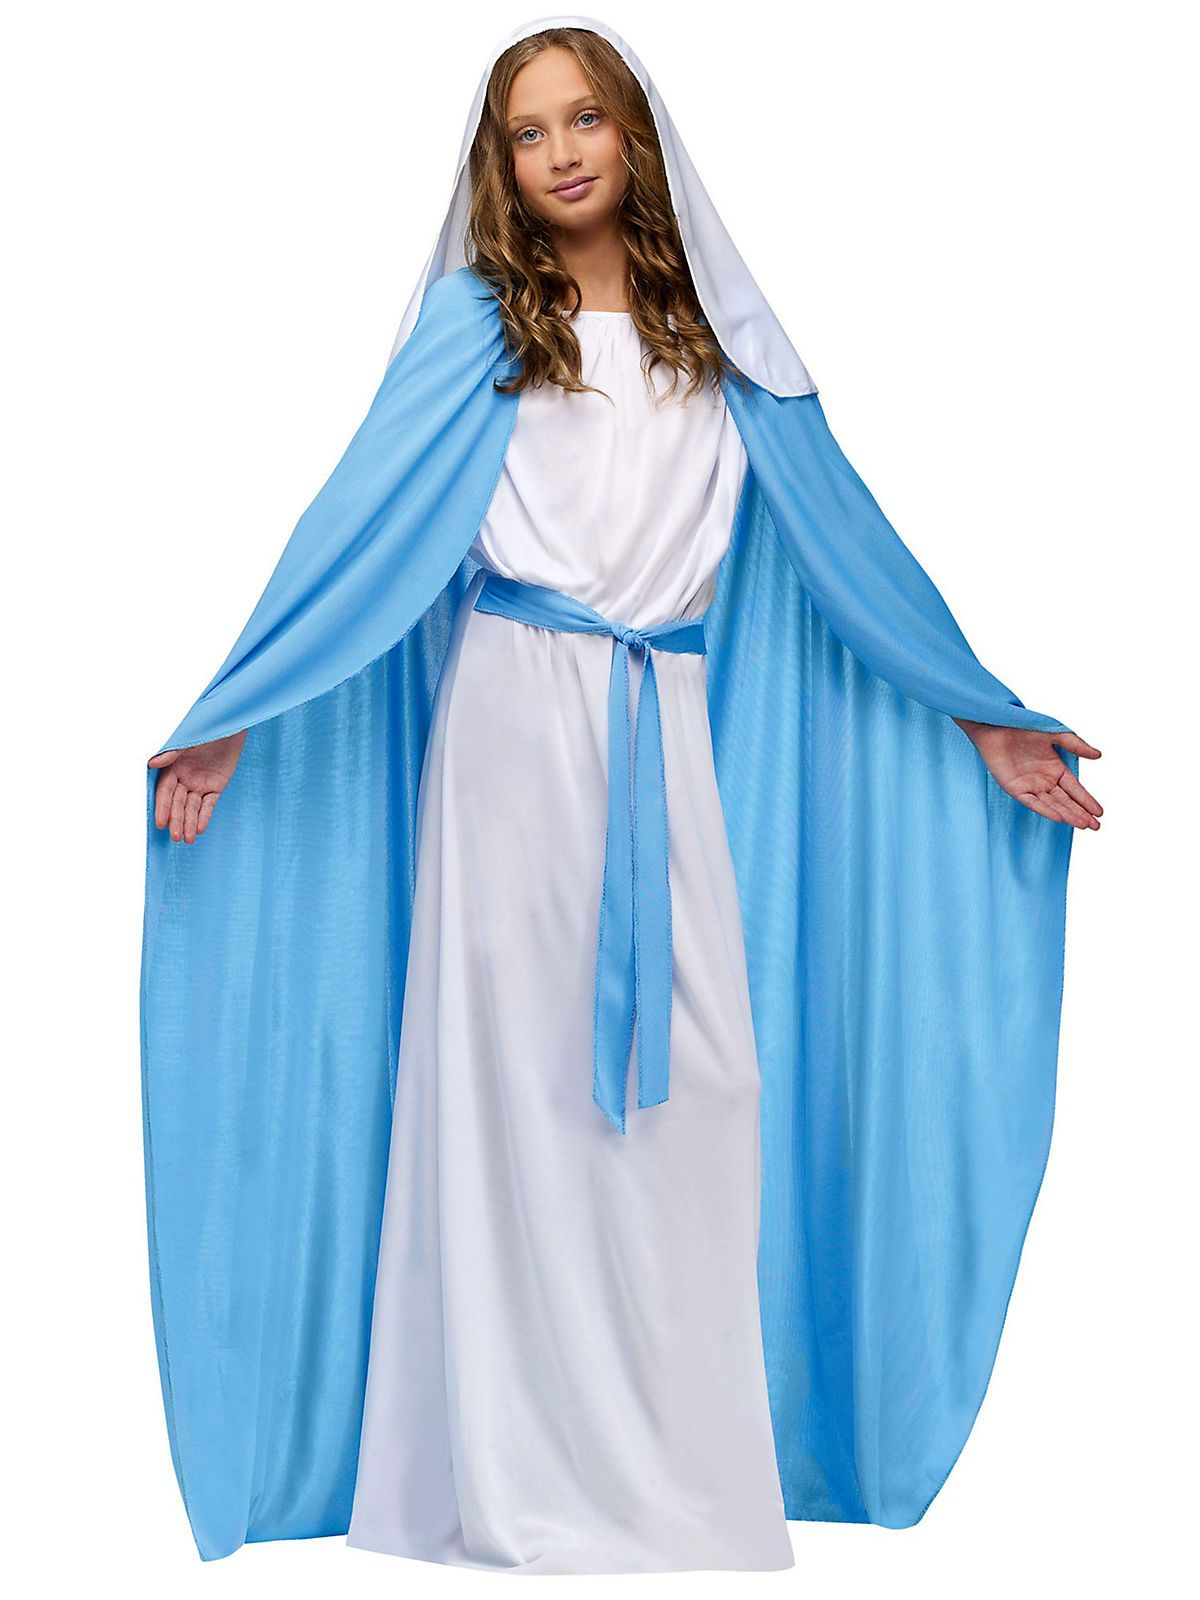 homemade virgin mary costume - google search | christmas | pinterest